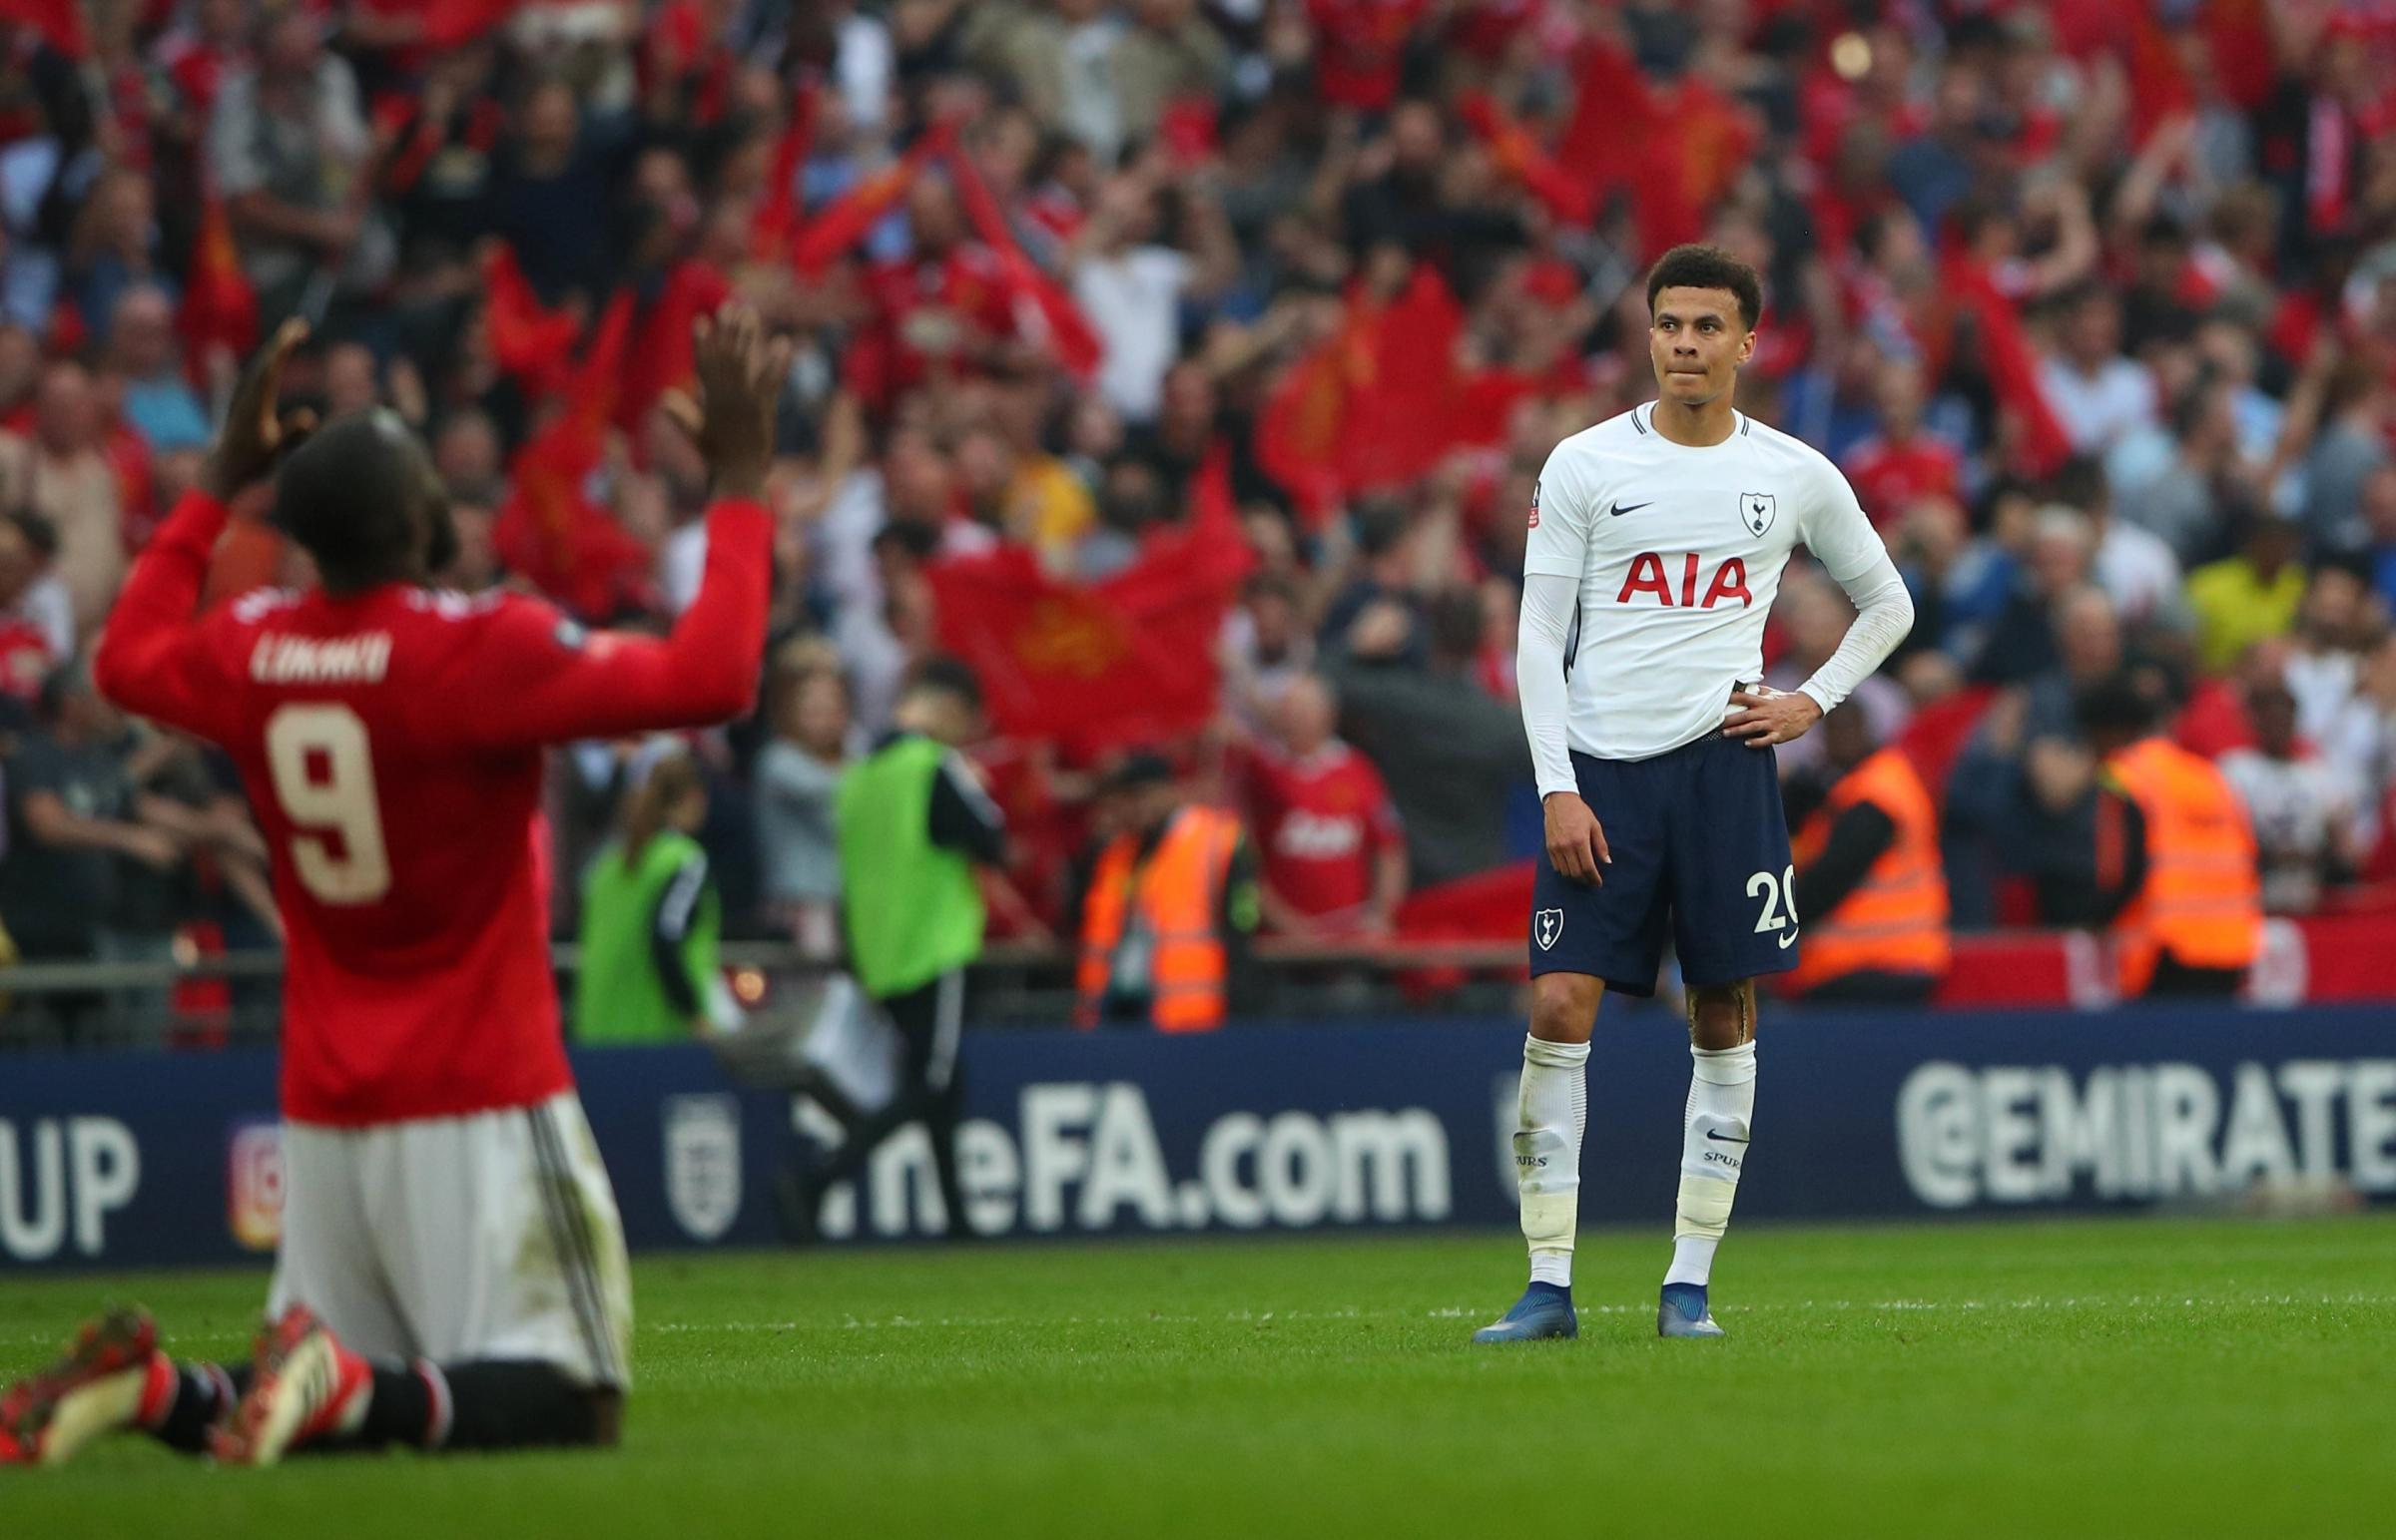 Dele Alli's strike wasn't enough for Spurs as they lost 2-1 at Wembley. Picture: Action Images